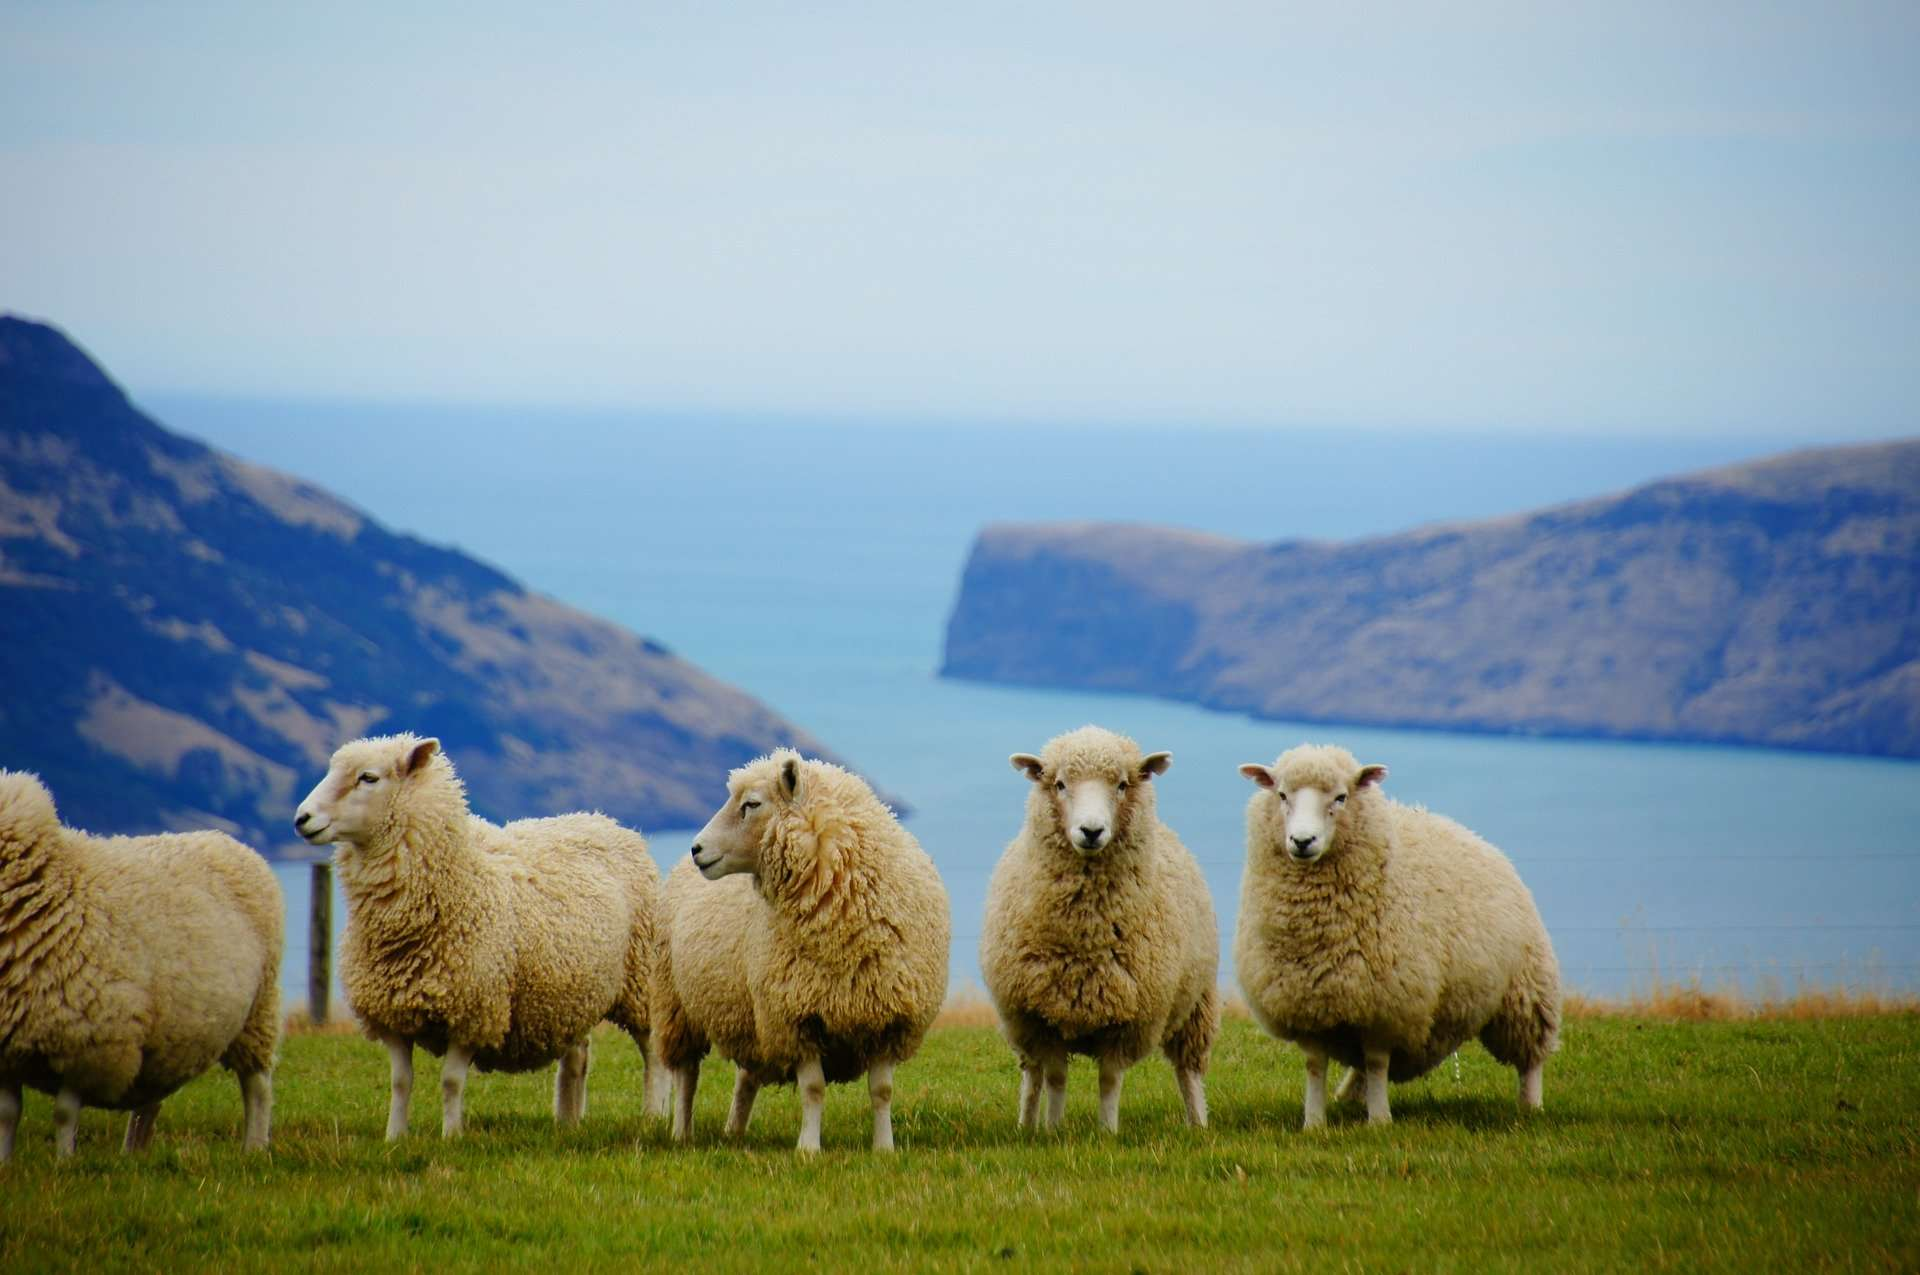 Coronavirus: Akaroa businesses fear devastating impact of cruise ship restrictions